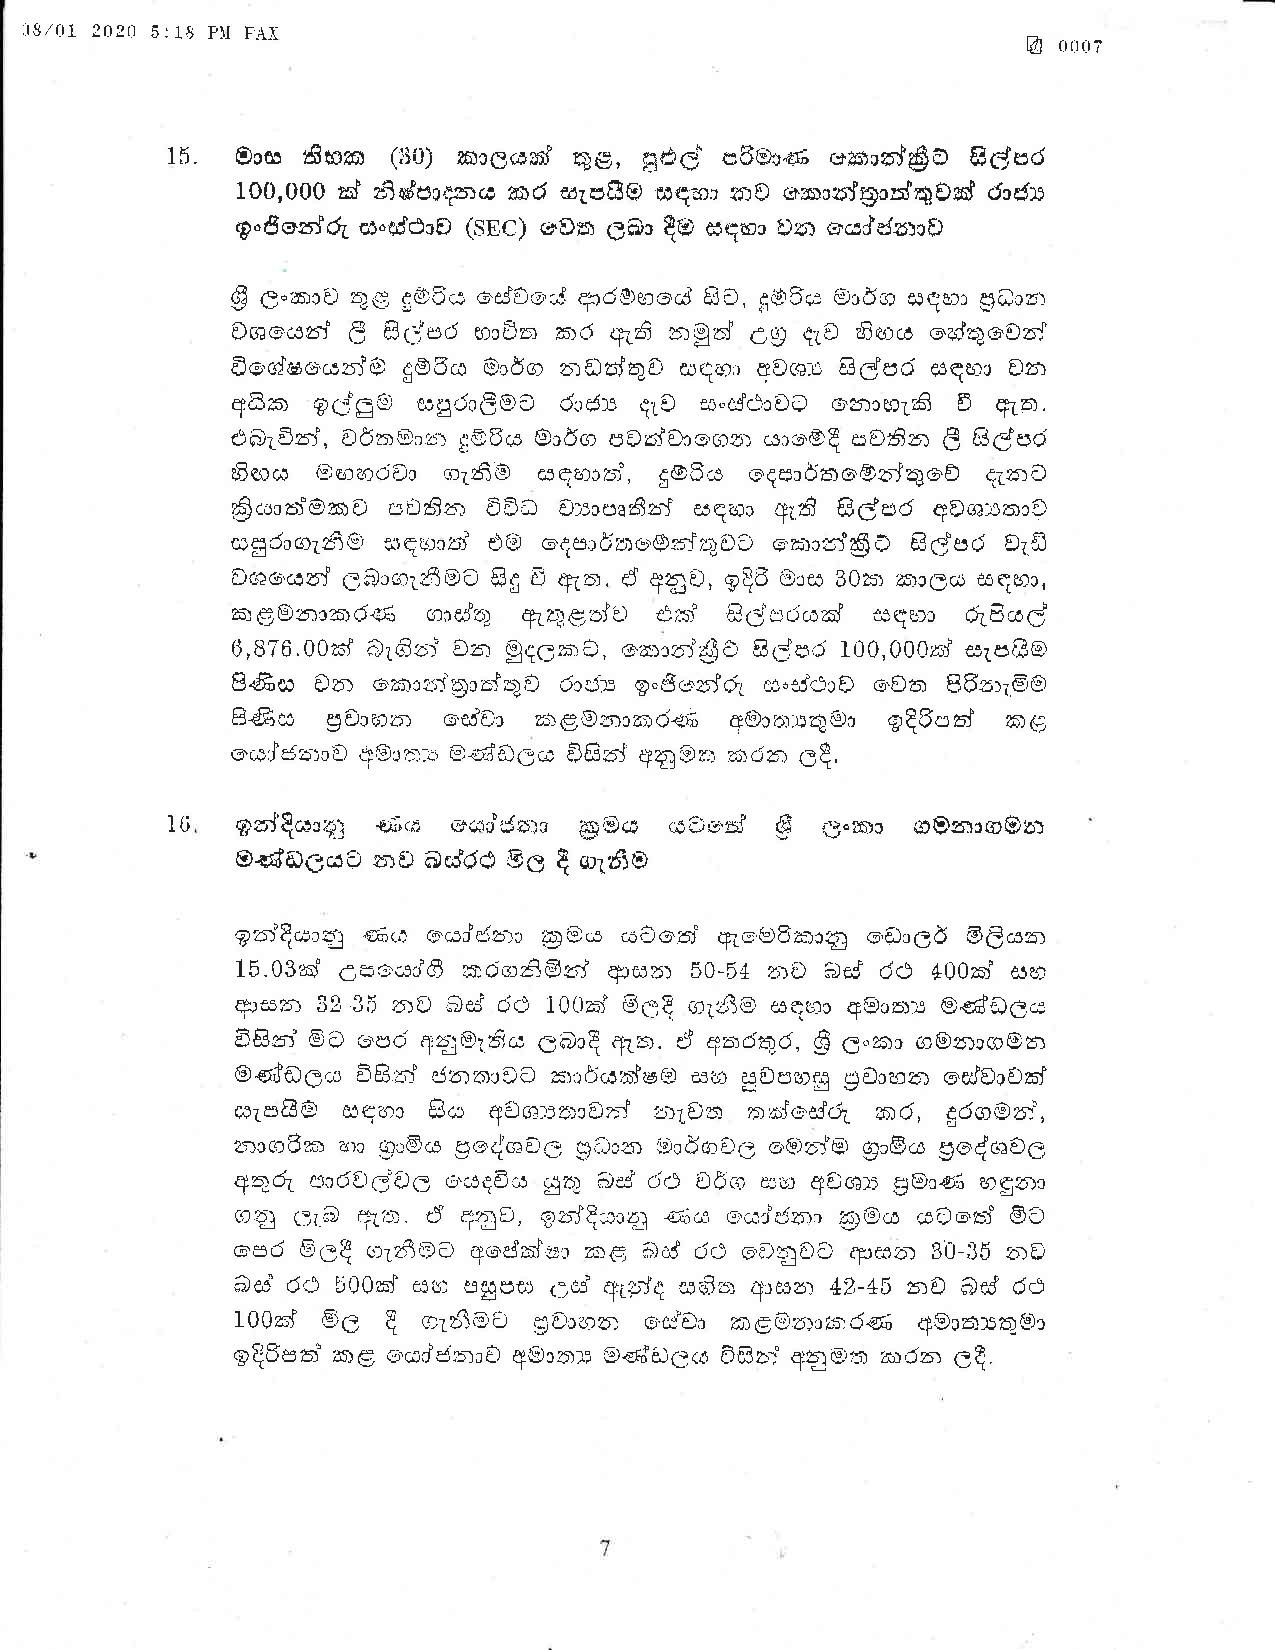 Cabinet Decision on 08.01.2020 page 007